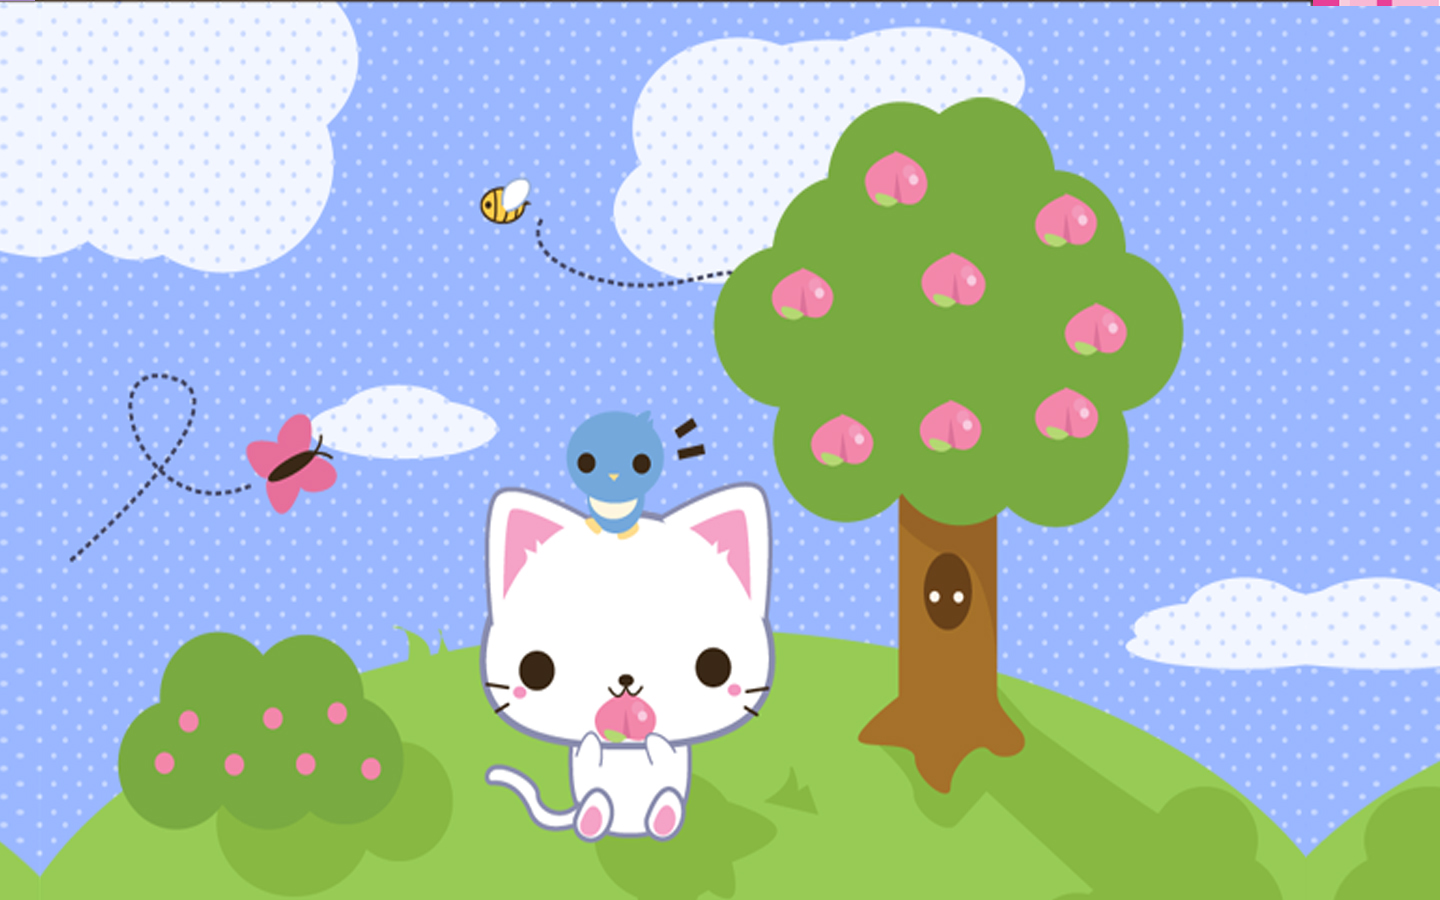 Neko kawaii wallpaper   ForWallpapercom 1440x900